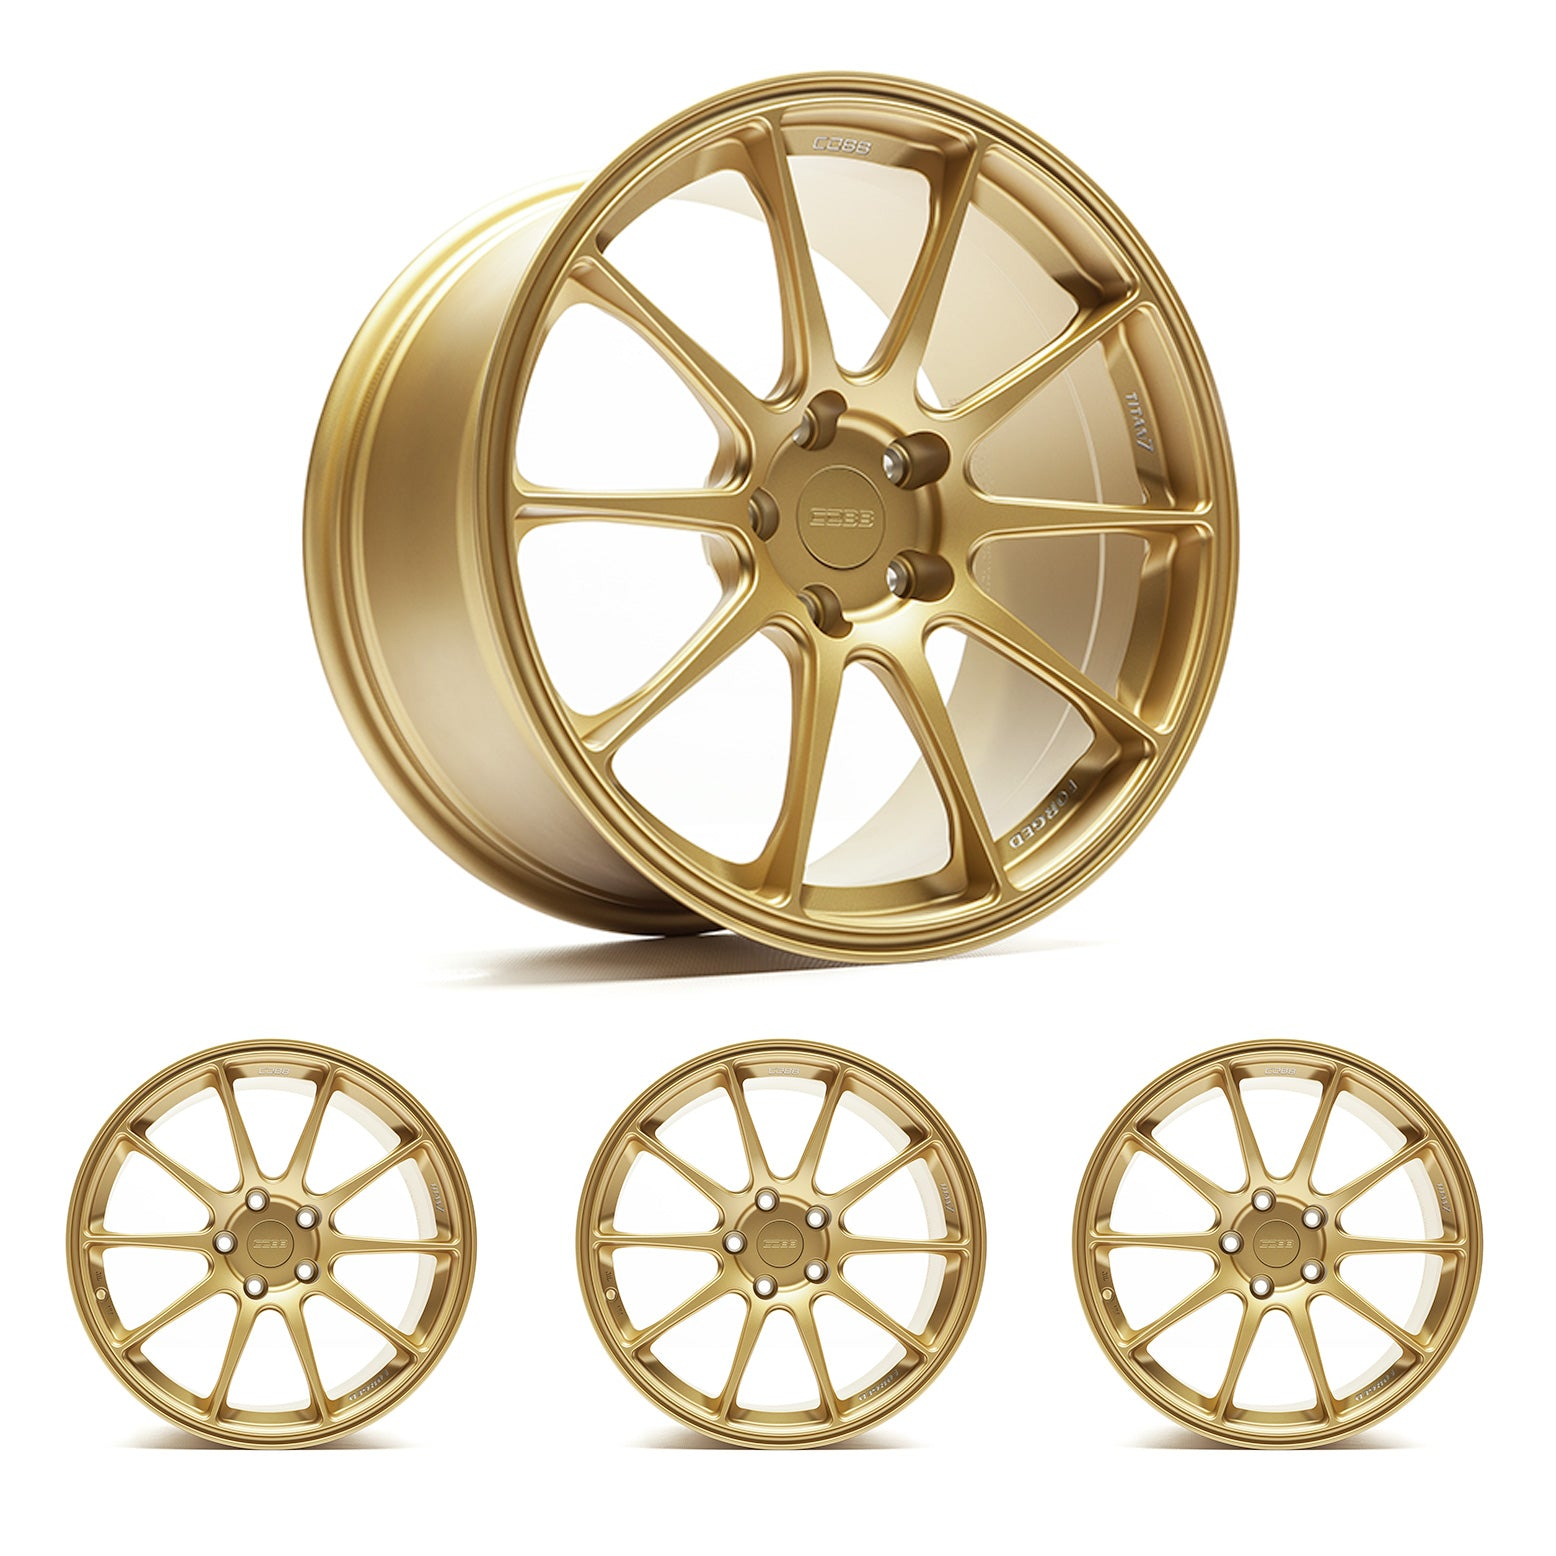 "Titan7 T-R10 COBB Edition 18"" x 9.5"" Cyber Gold Wheels"